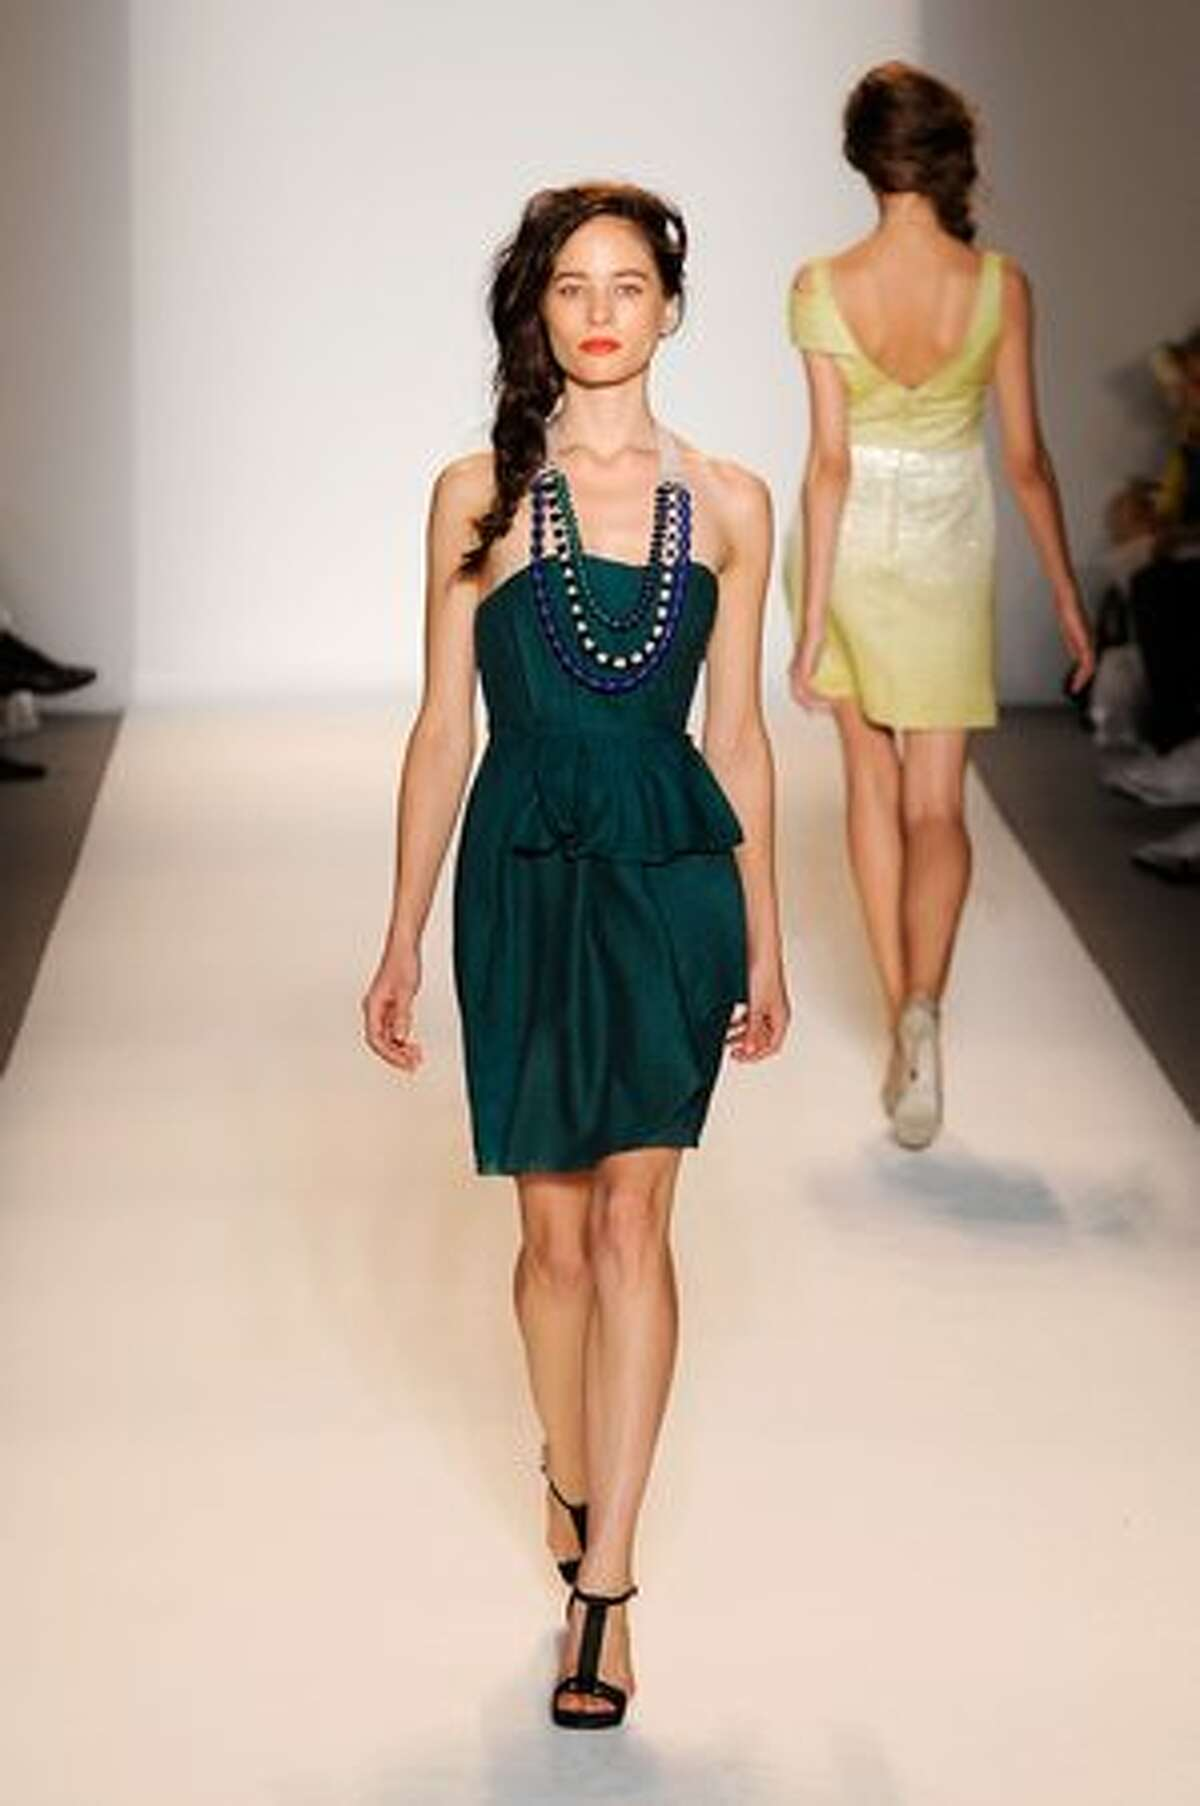 A model walks the runway at the Lela Rose spring 2011 fashion show during the Mercedes-Benz Fashion Week at Lincoln Center in New York on Sunday, Sept. 12, 2010.